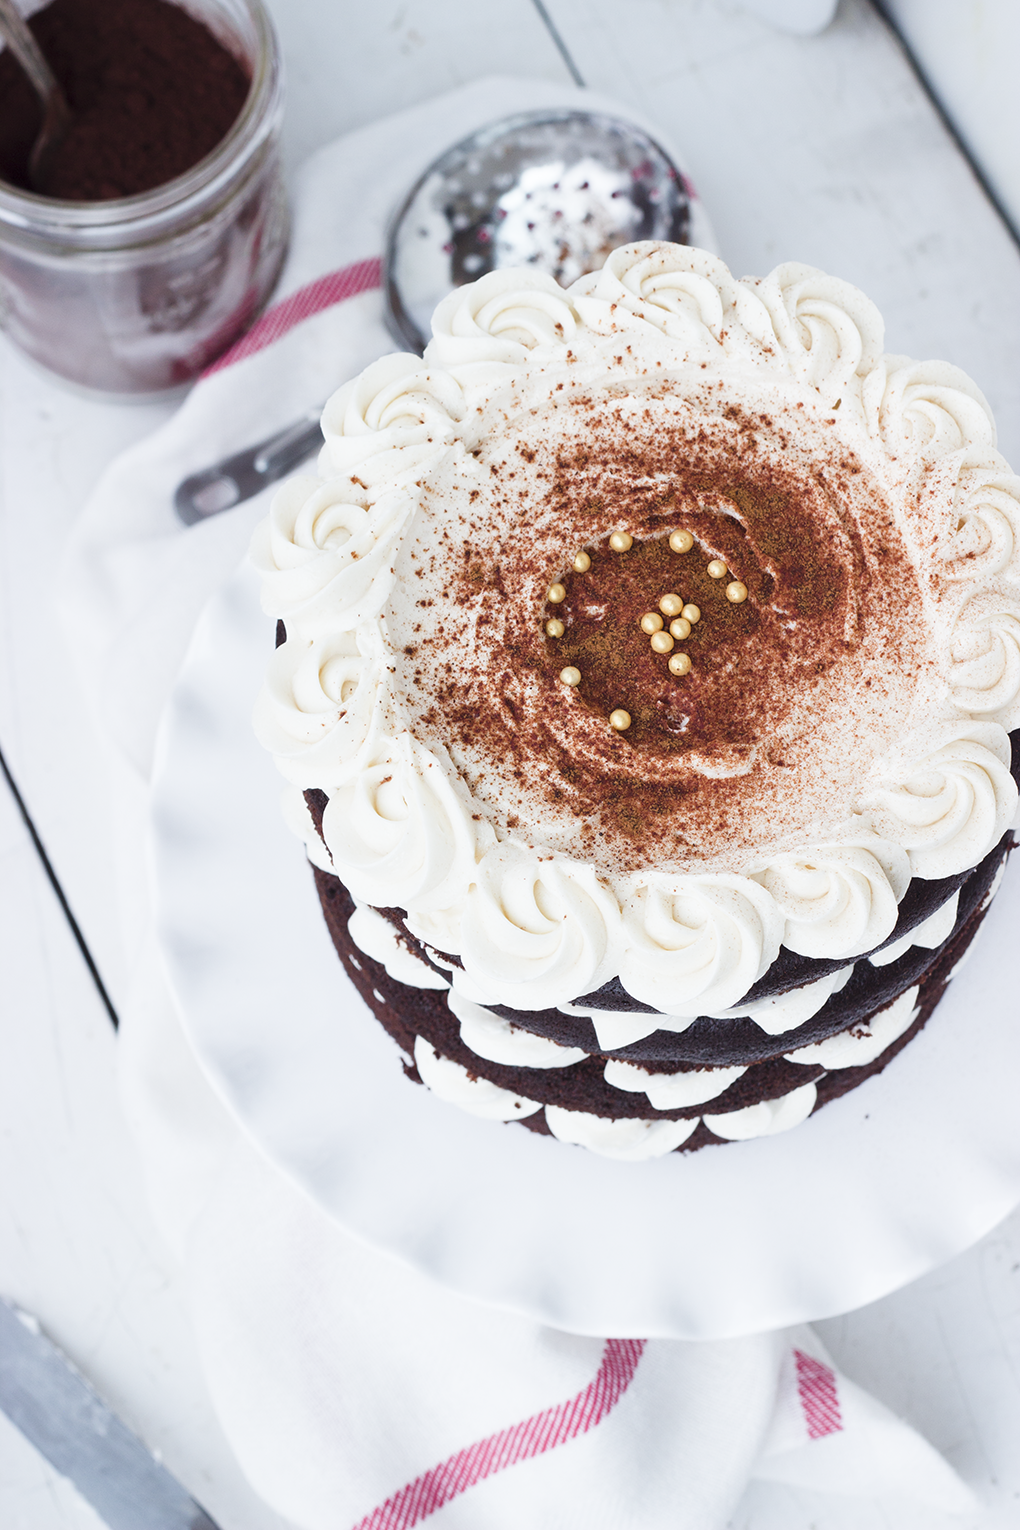 Mexican Spice Horchata Cake - Fudgy chocolate cake spiced with cinnamon and cayenne pepper, topped with horchata buttercream. Perfect for Cinco de Mayo, or whenever.